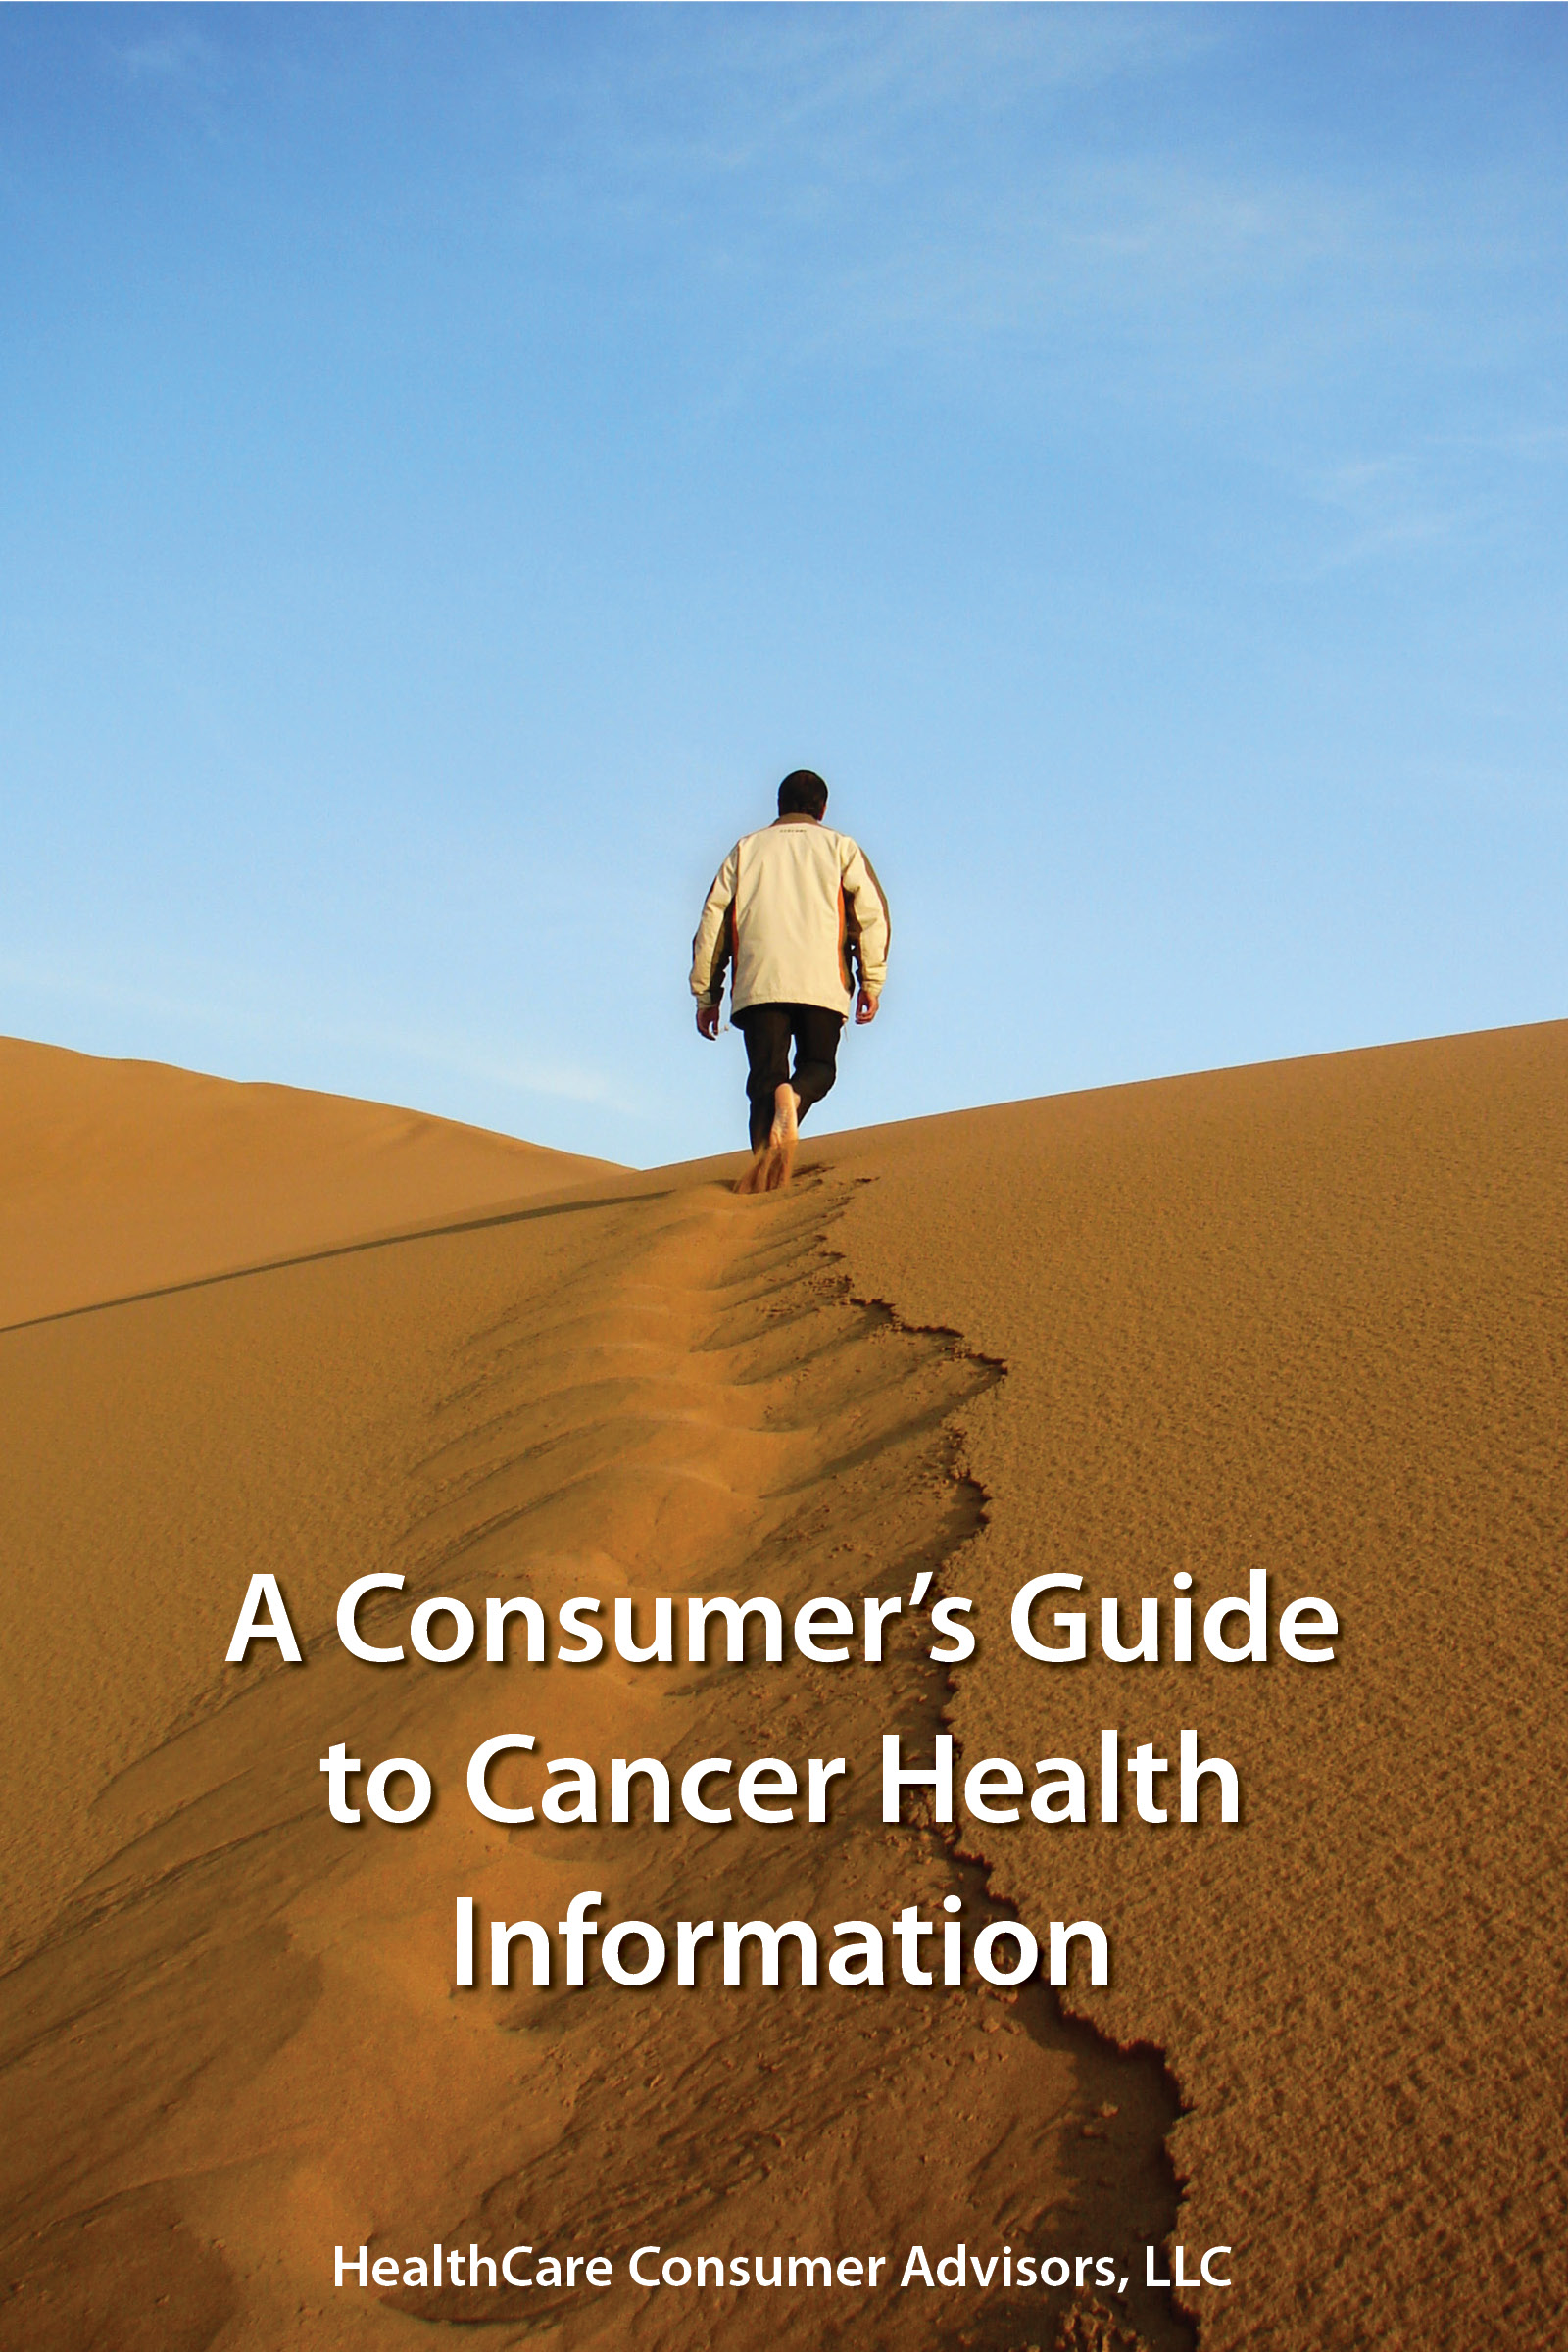 HealthCare Consumer Advisors, LLC - A Consumer's Guide to Cancer Health Information